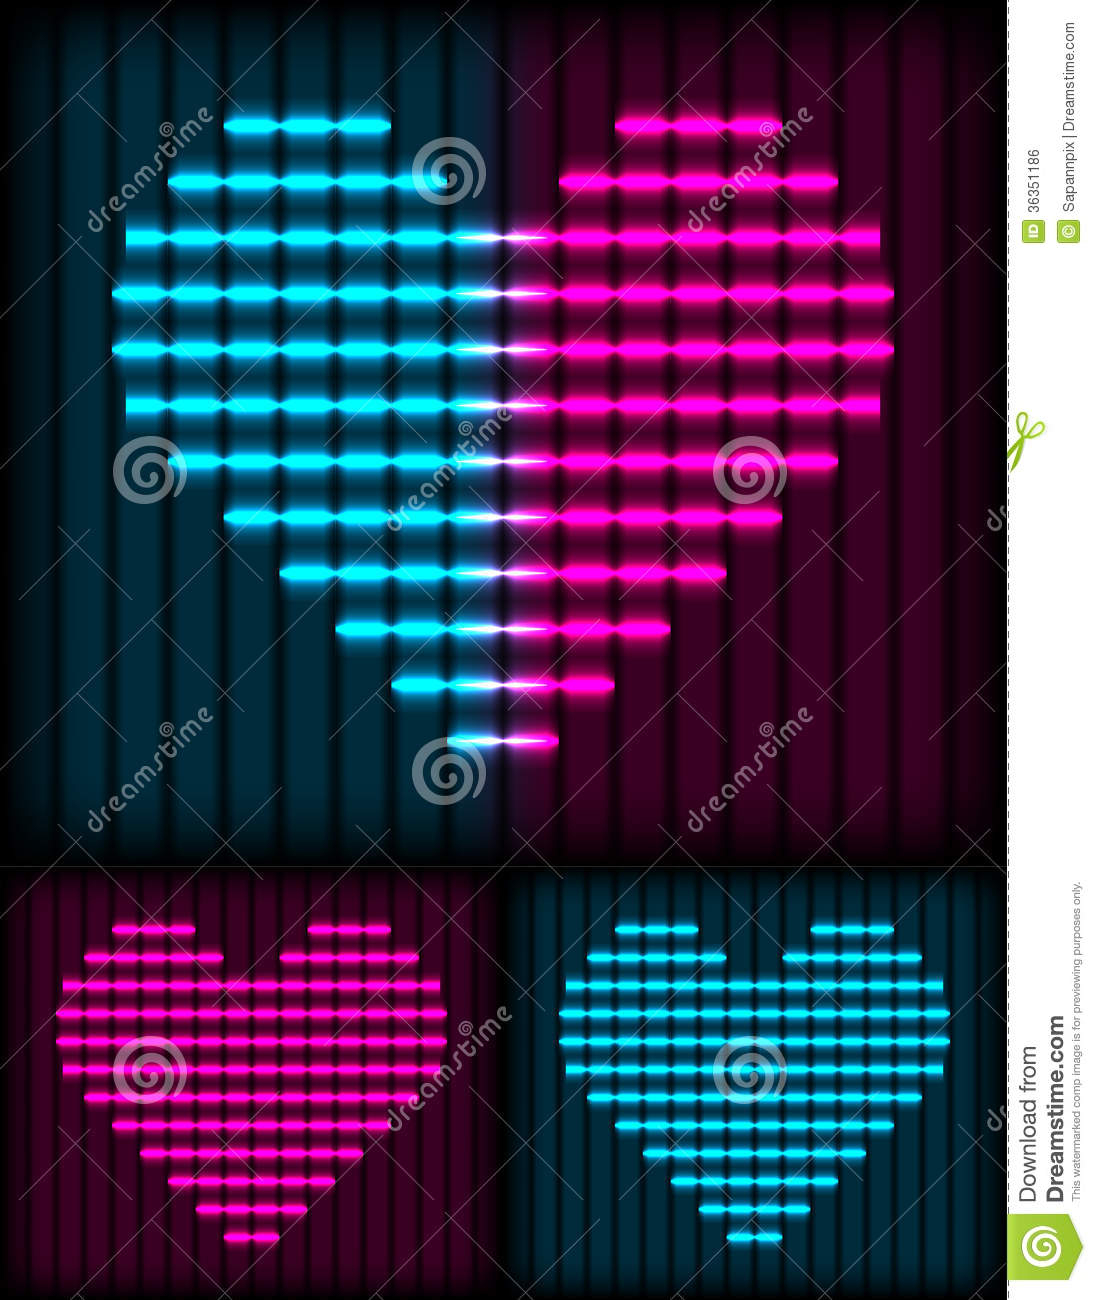 Neon Heart Background Royalty Free Stock Image - Image ...